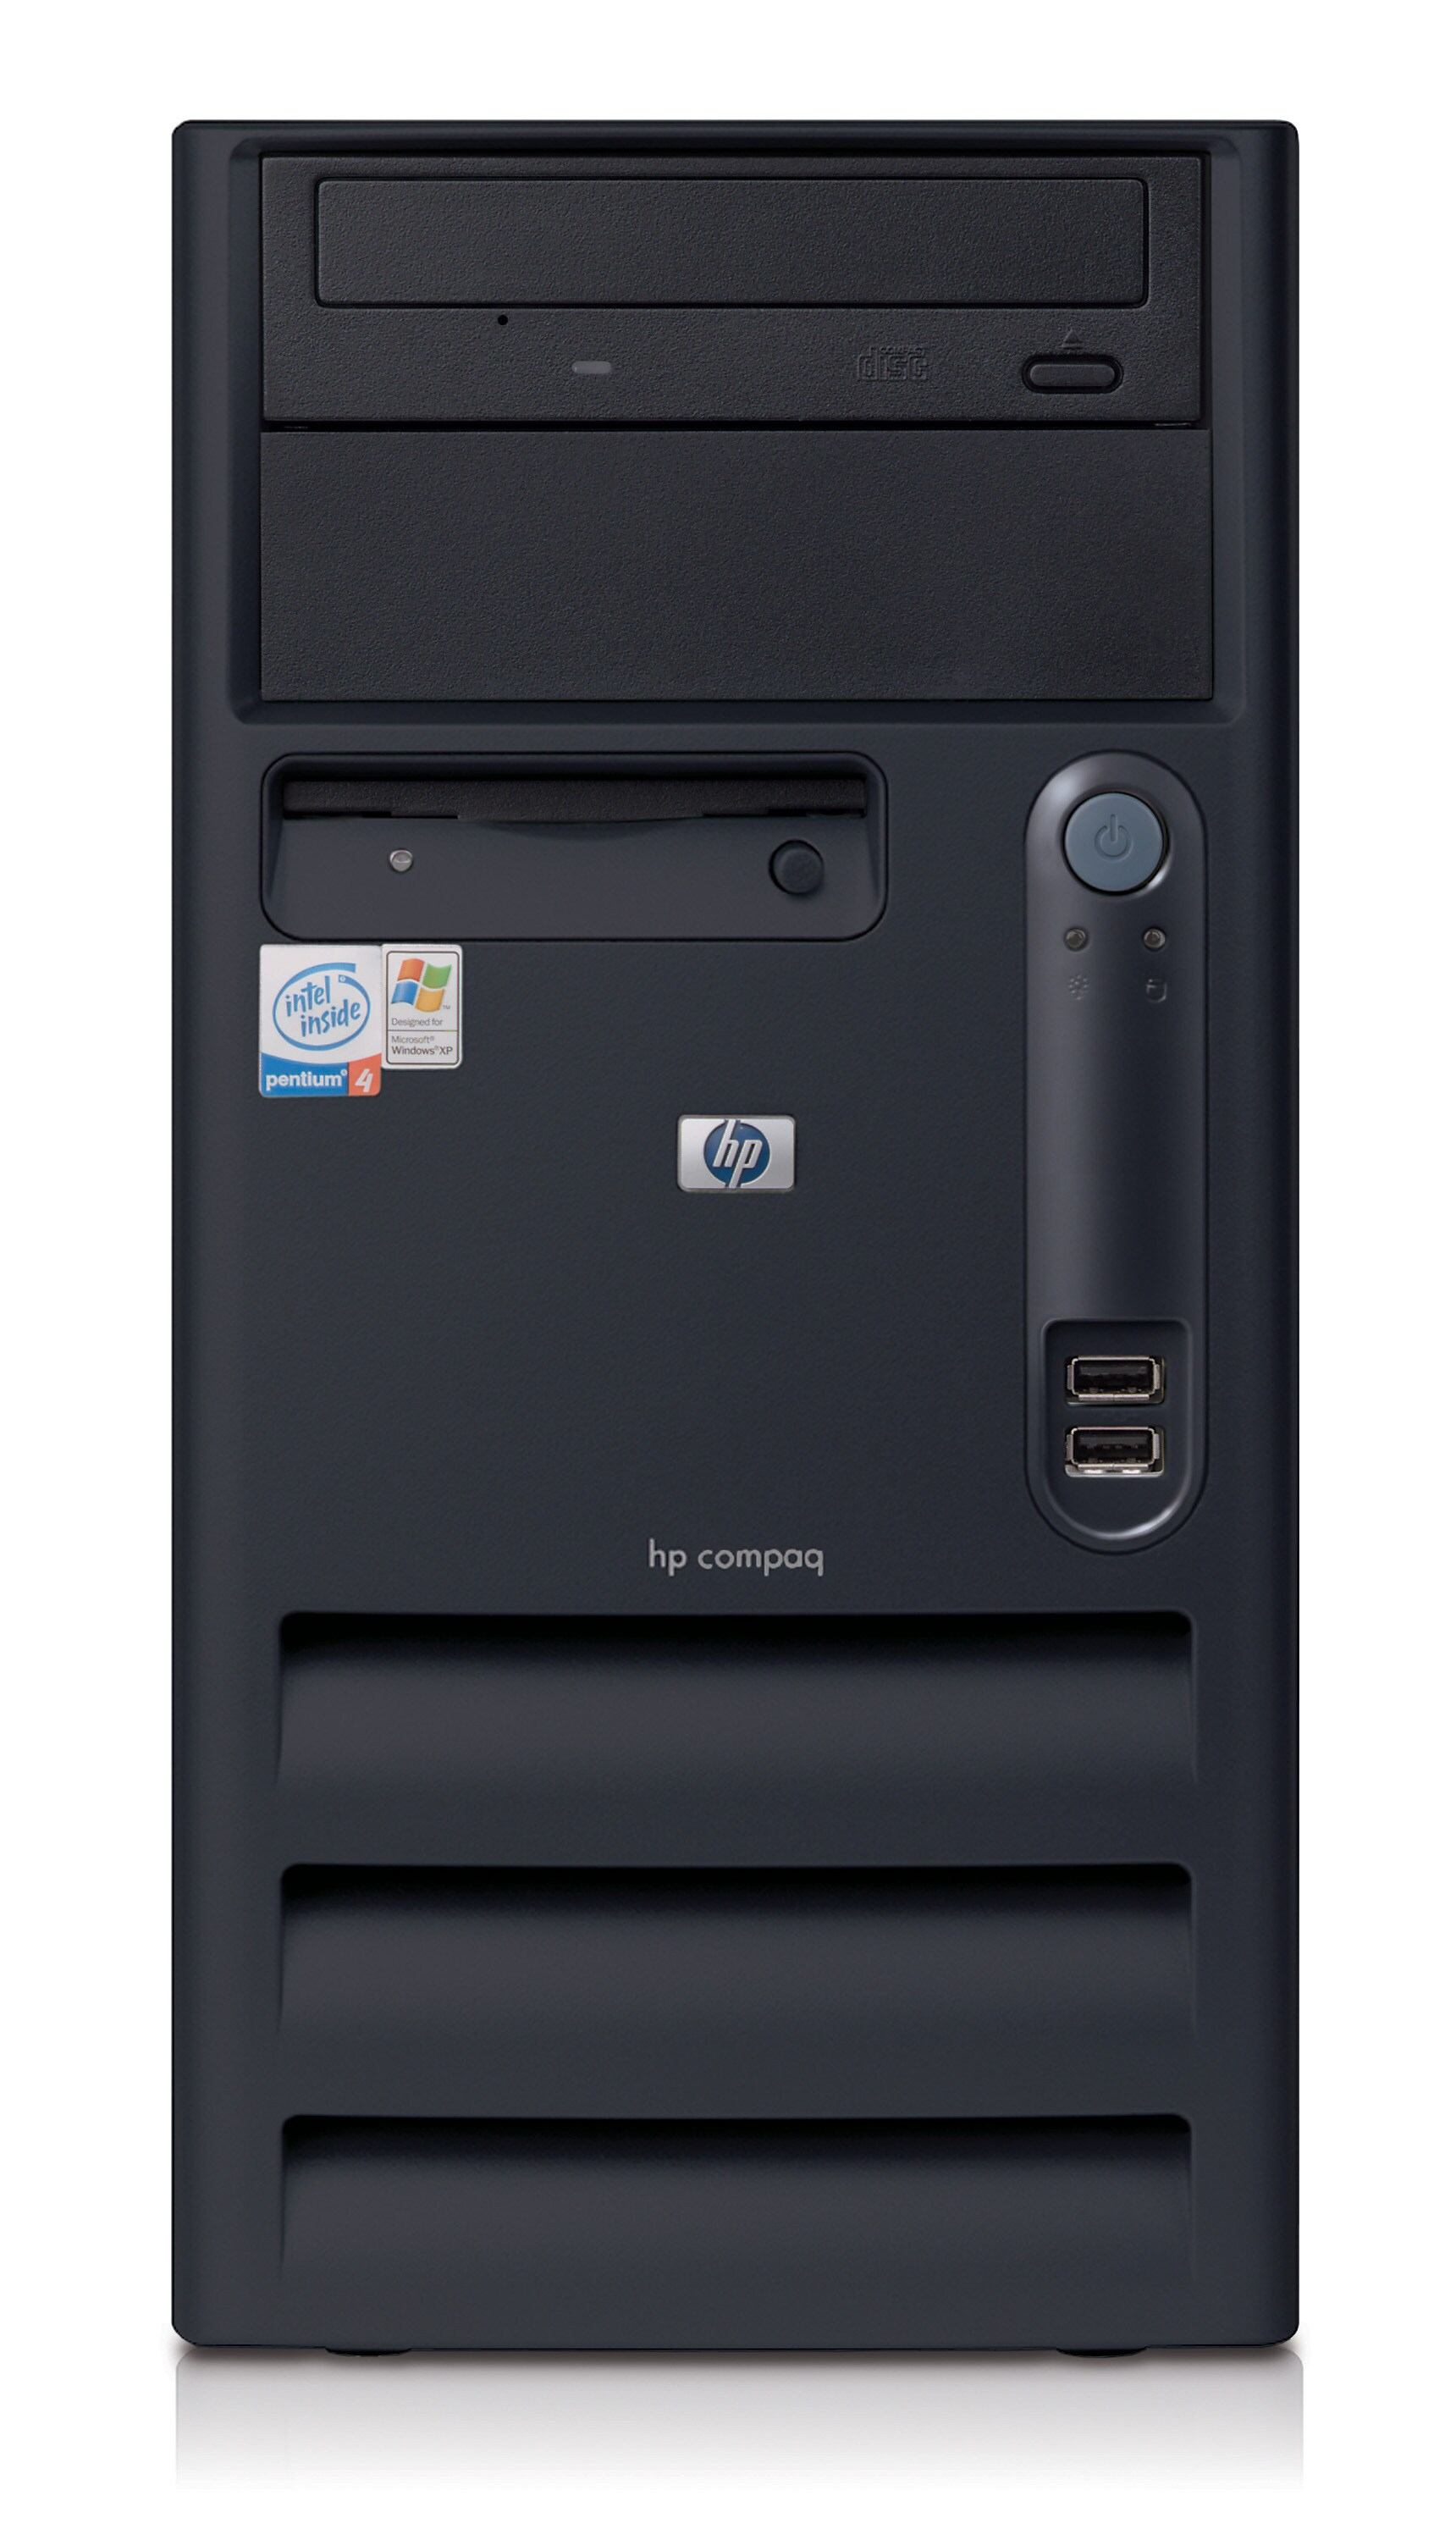 HP DX2000 NETWORK CARD DRIVER FOR WINDOWS 7